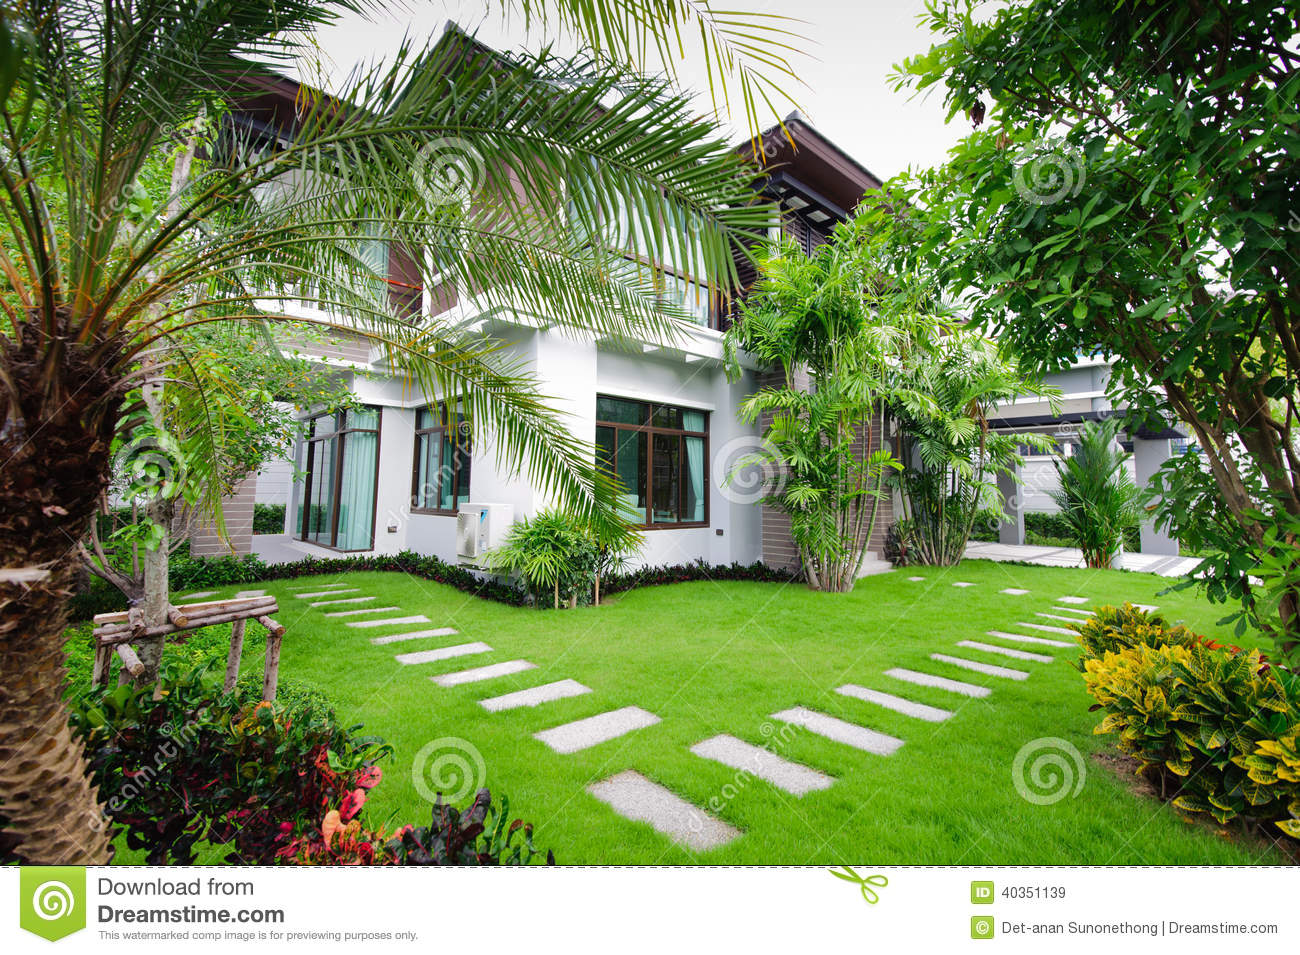 Maison moderne dans le jardin photo stock image 40351139 for Salon de jardin de la maison